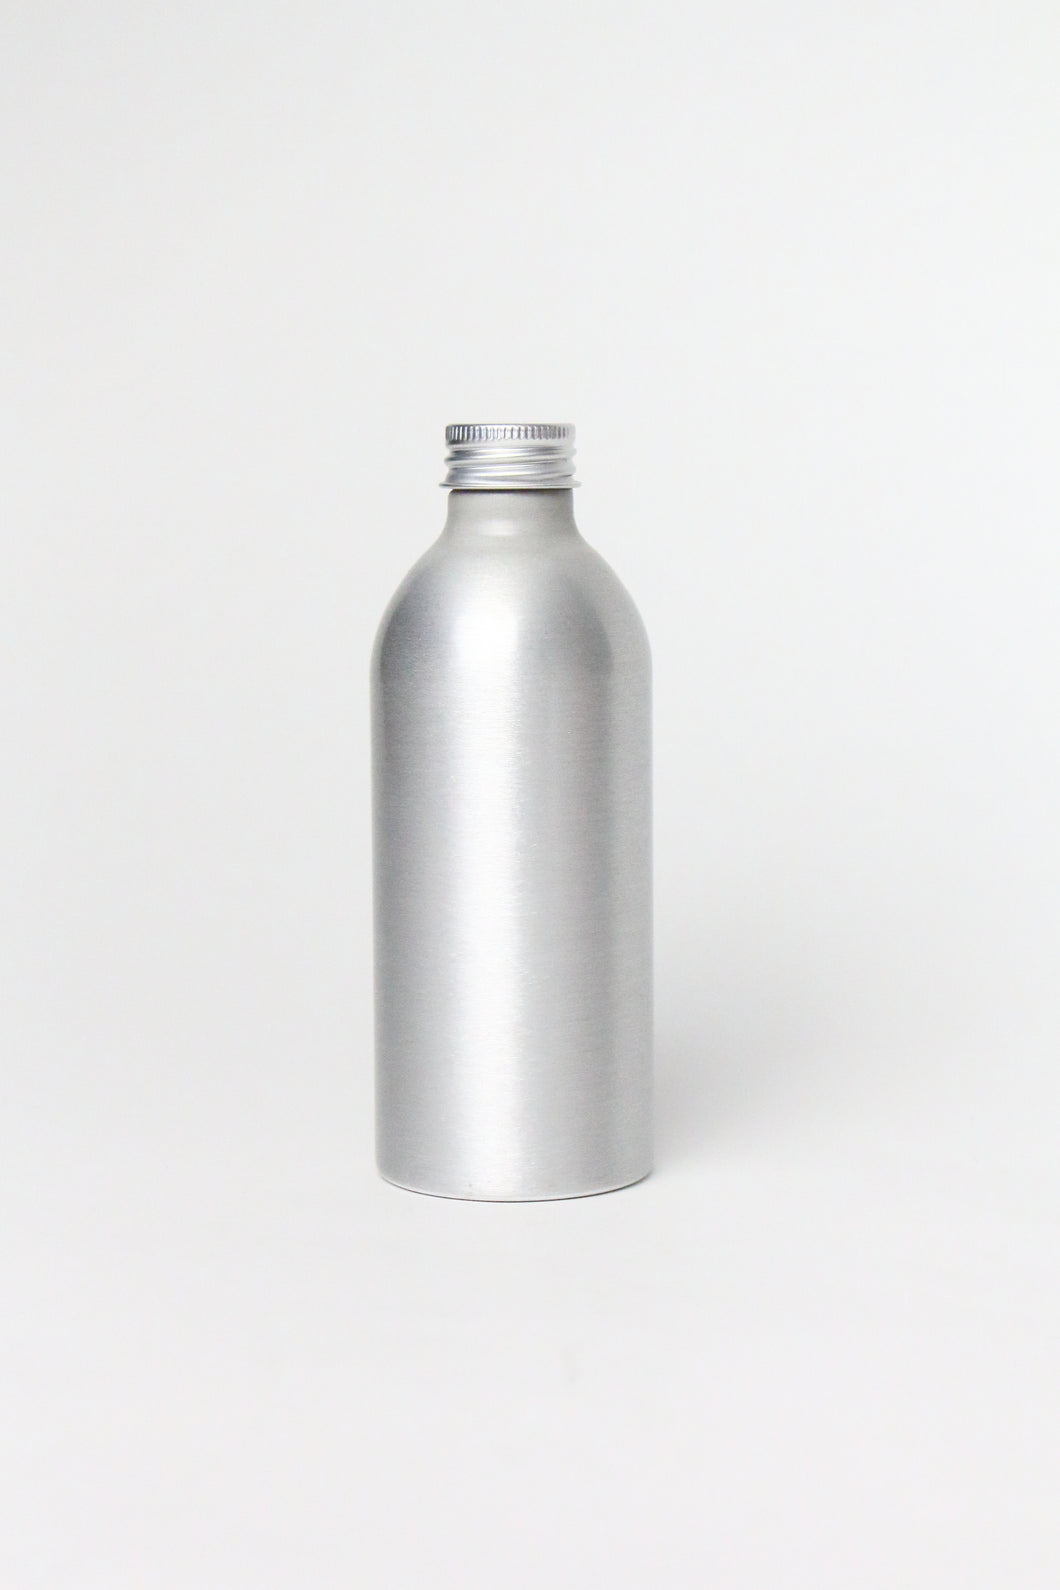 aluminium bottles - small